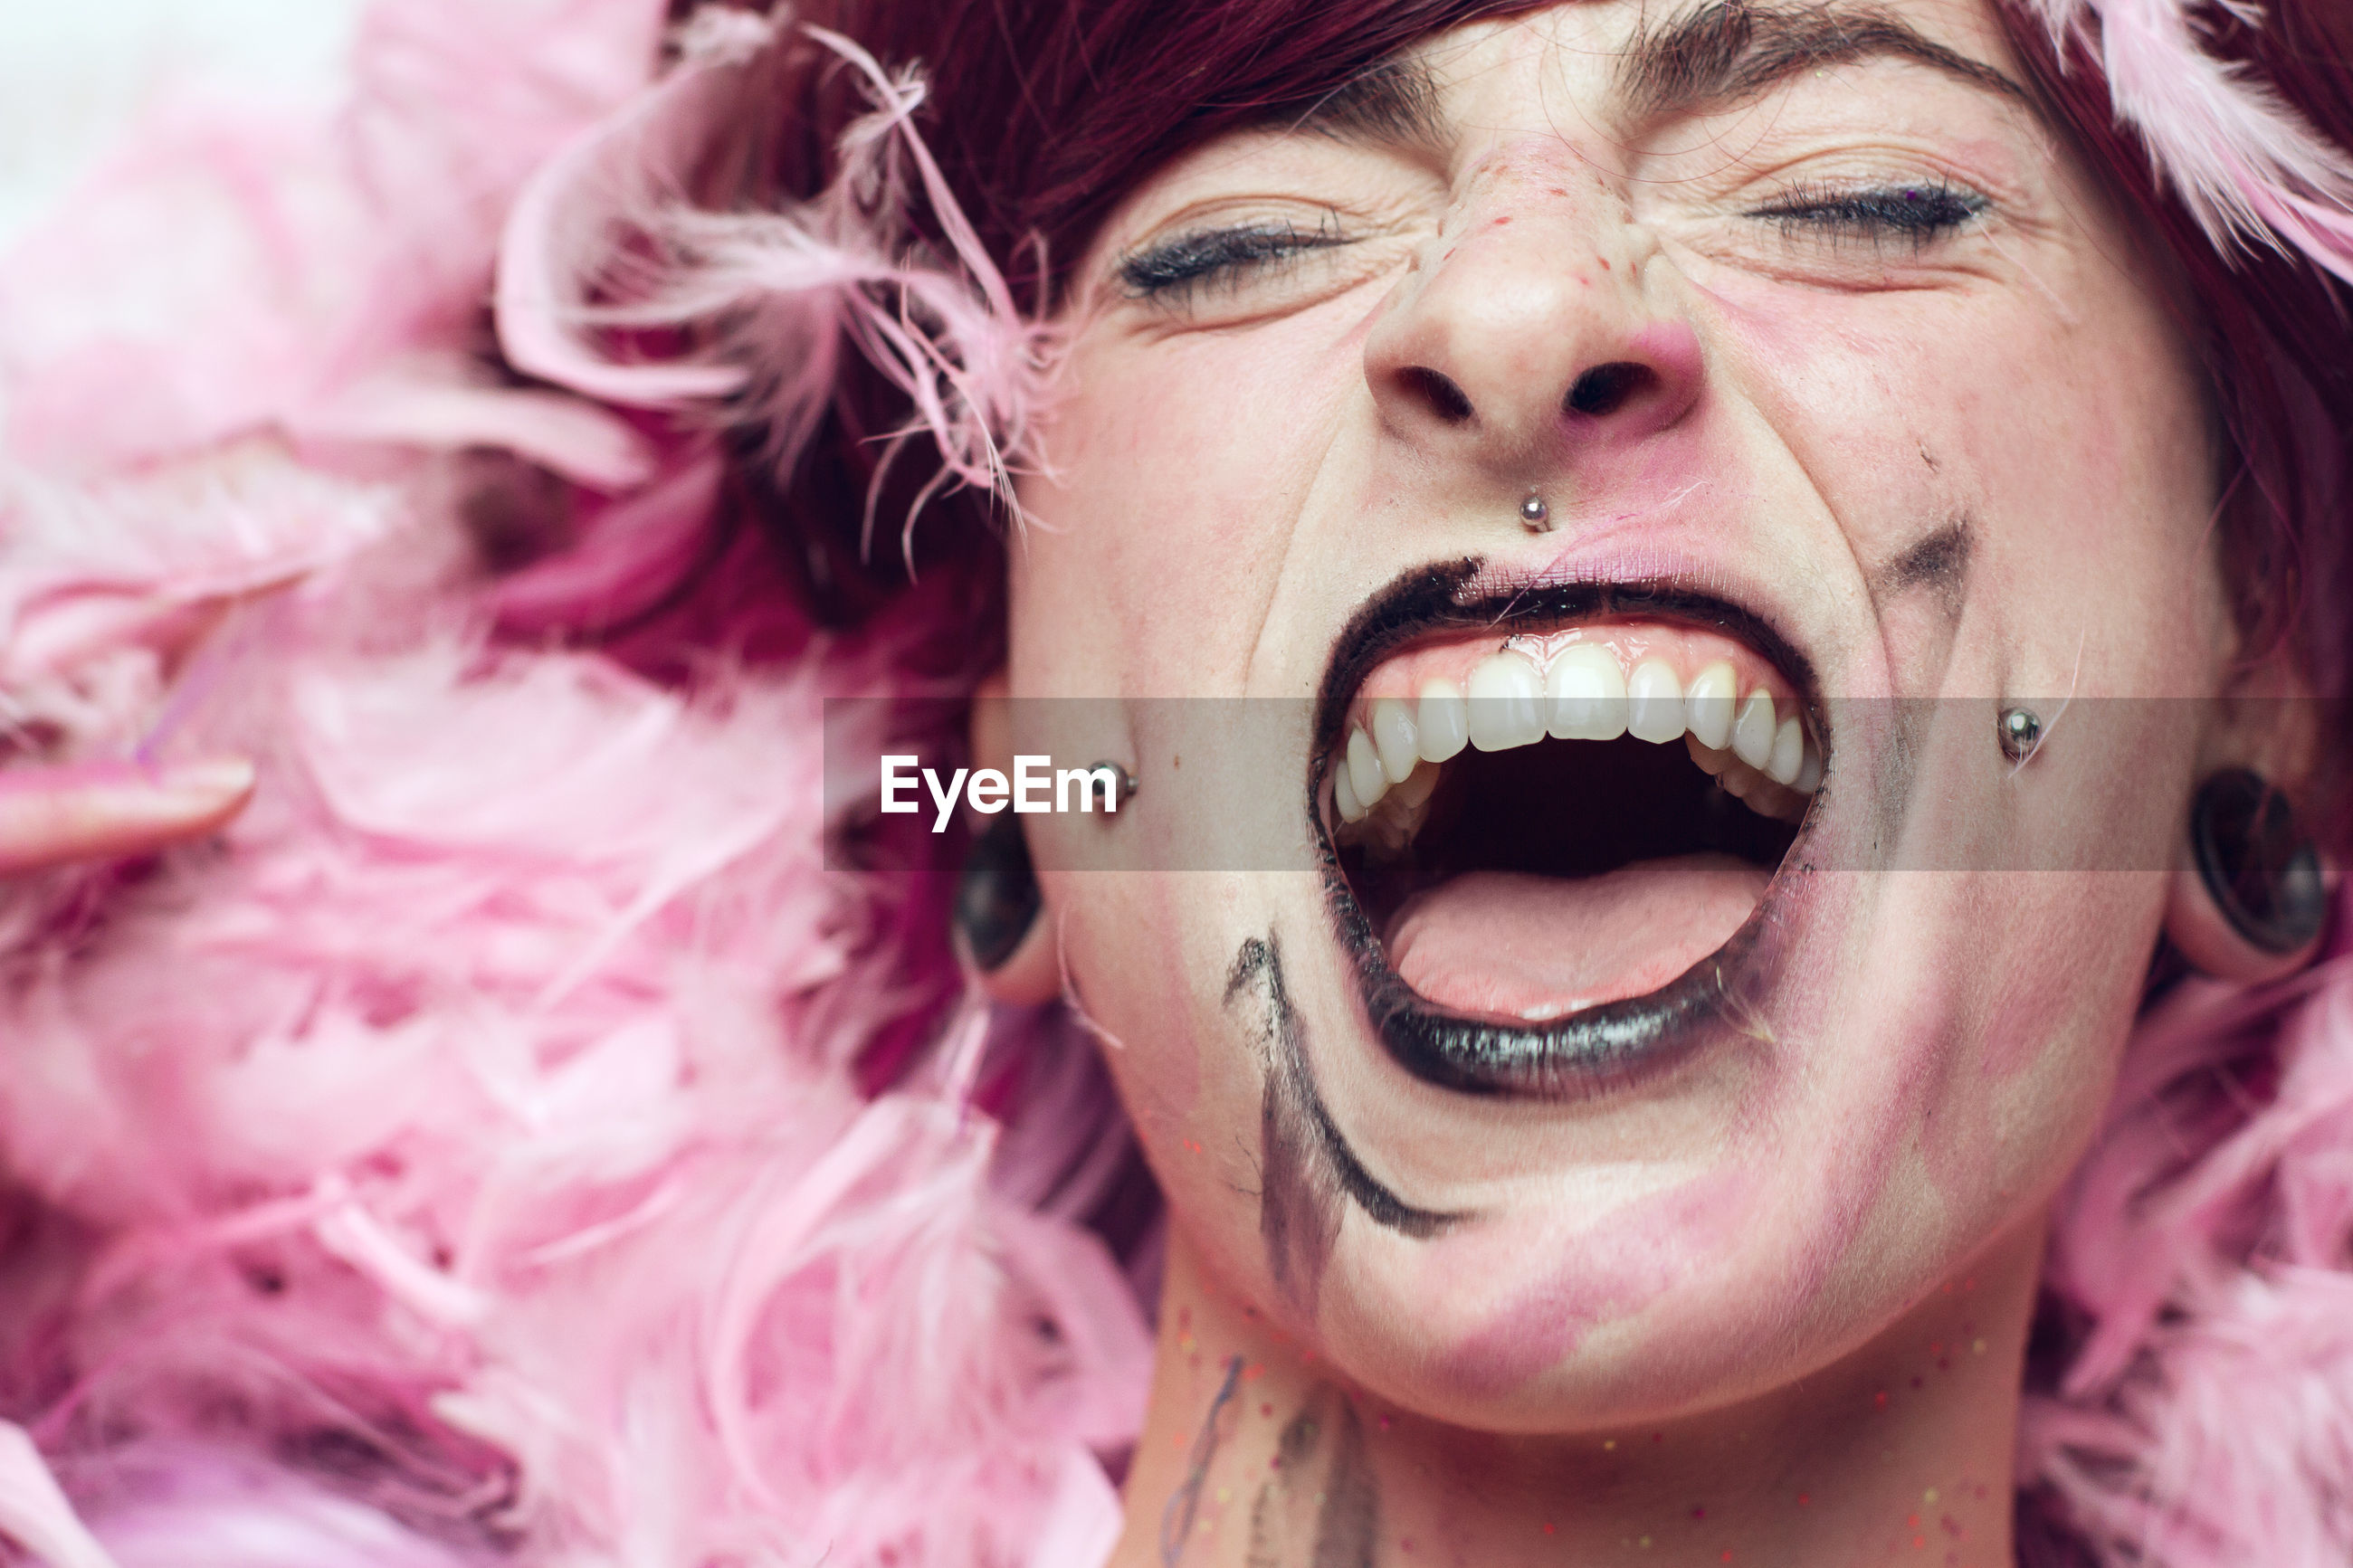 Close-up of woman with make-up screaming amidst pink feathers